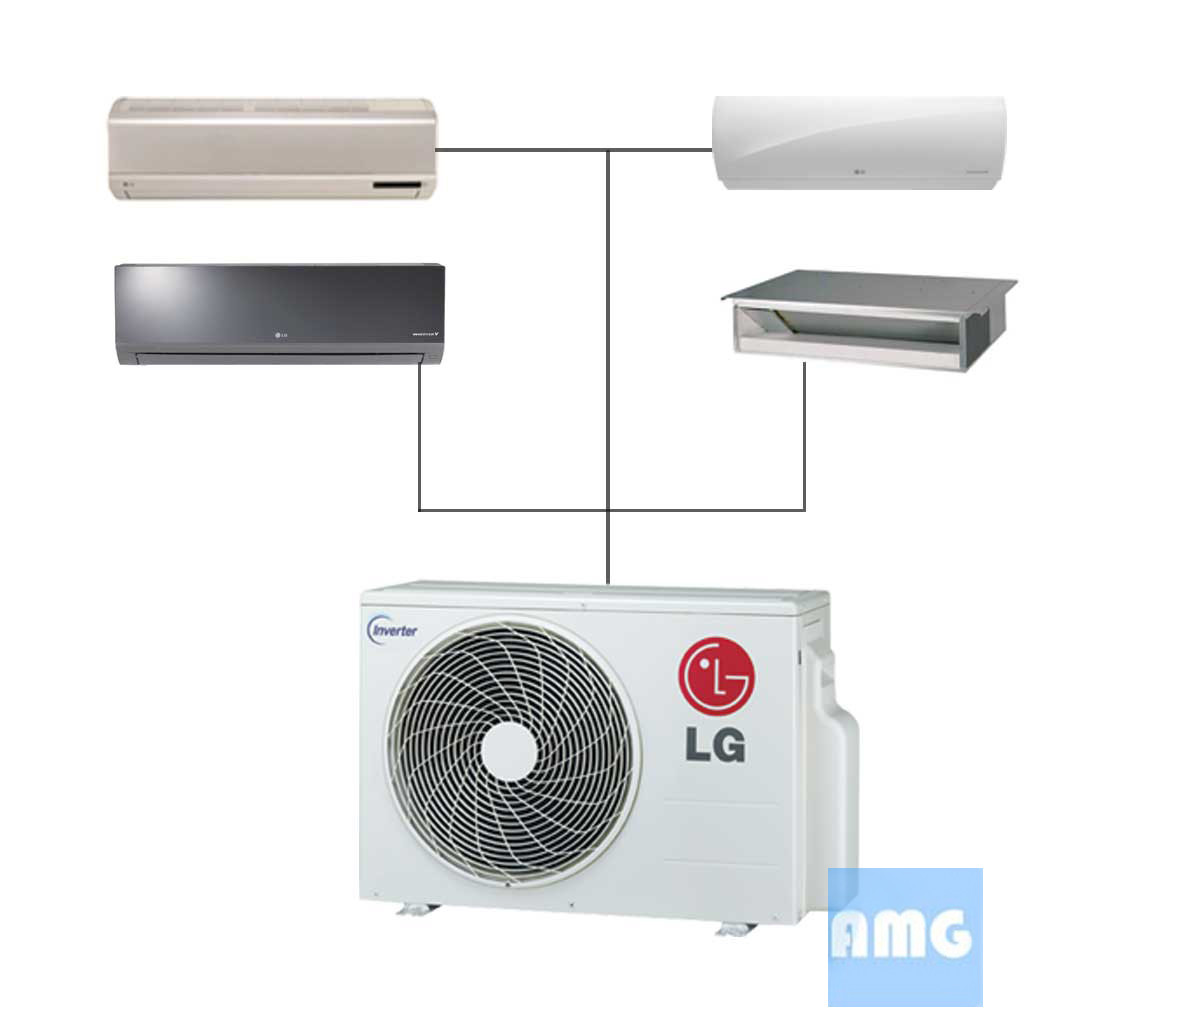 LG Mini Split Quad Zone Ductless AC Units AMG #0E66BD